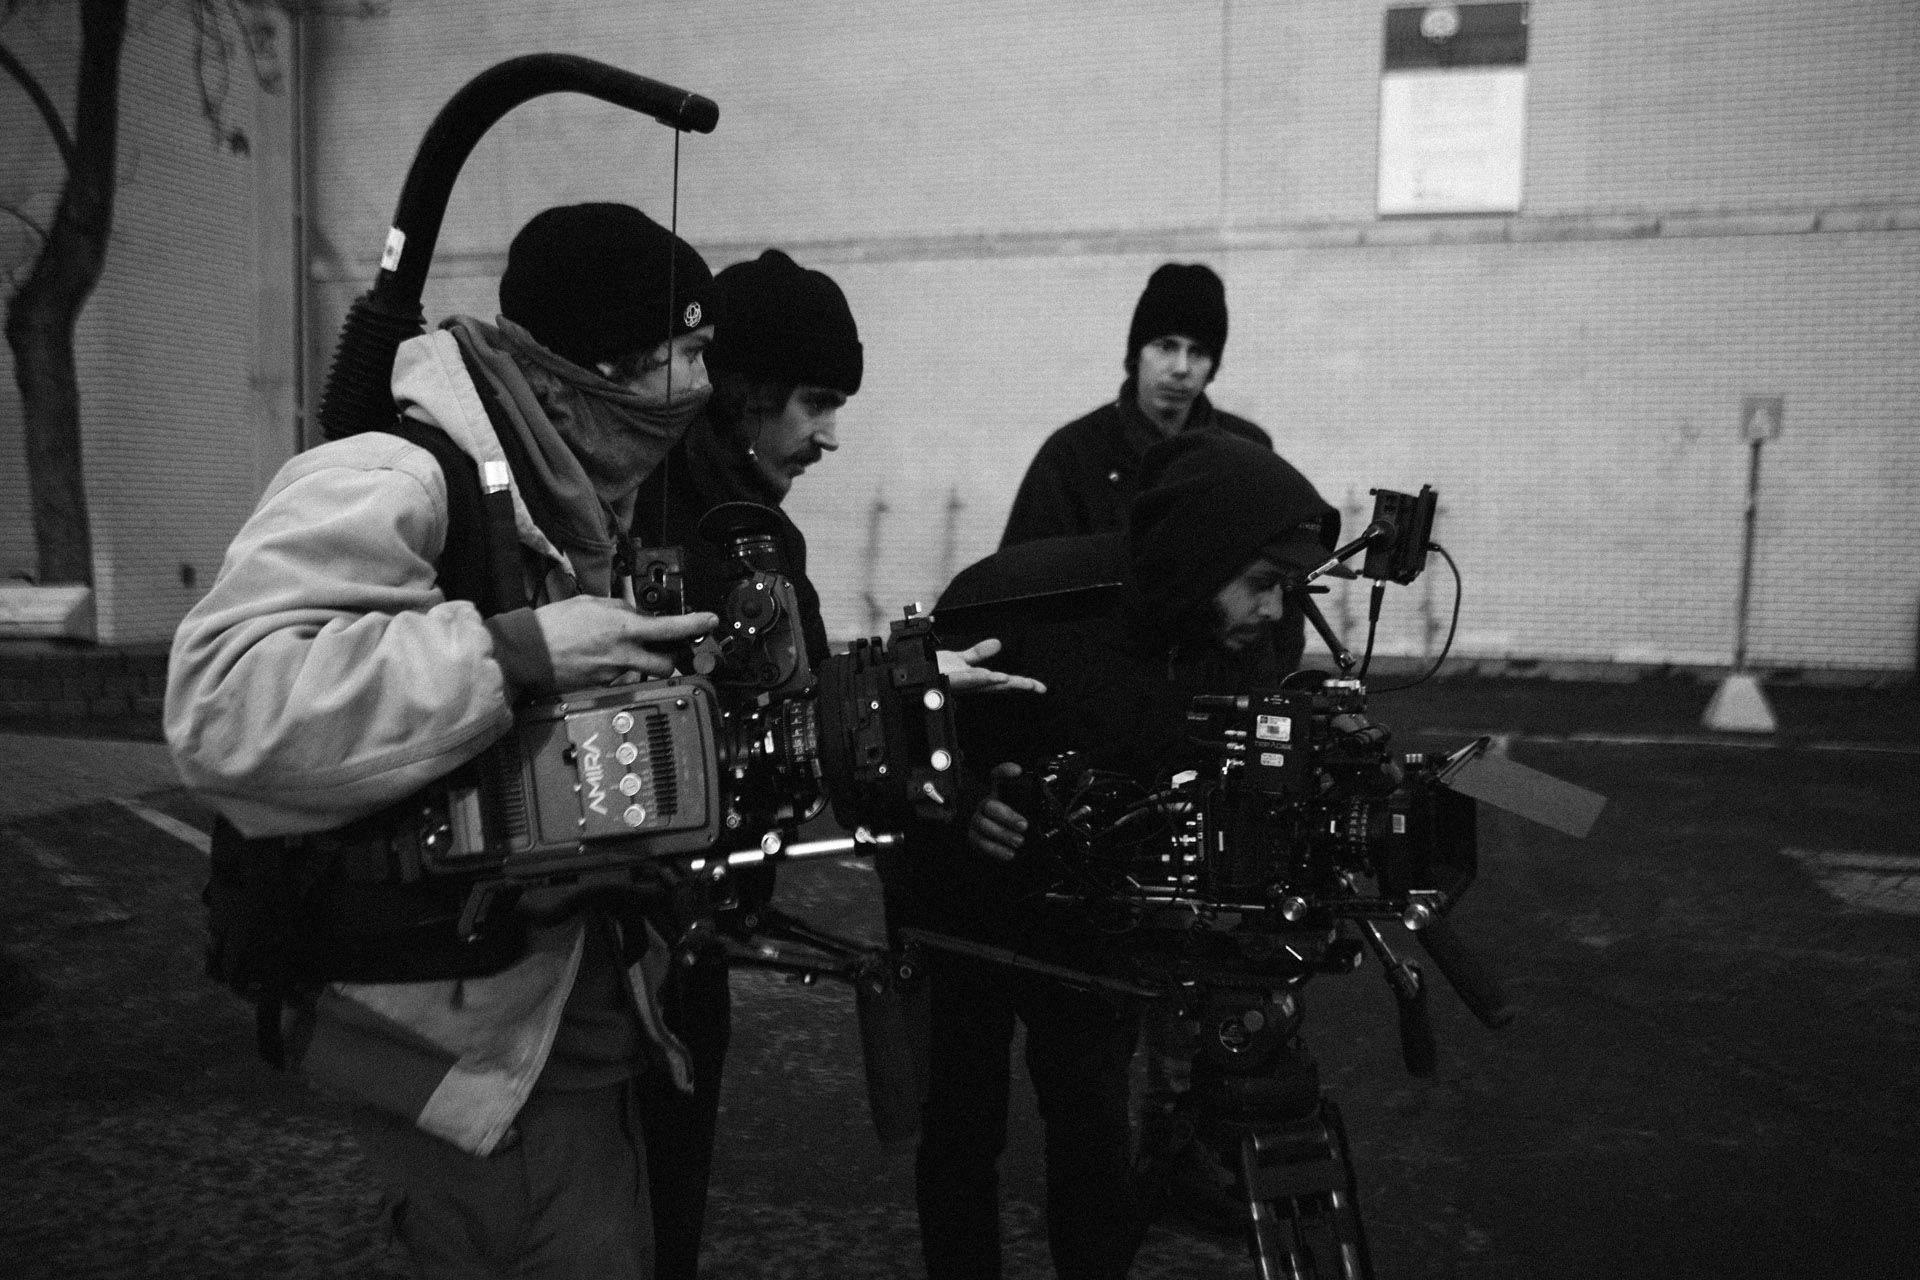 Vincent Ruel-Cote from Les Gamins checking footage screen with assistants in behind the scenes of TV series La Loi C'est La Loi with TV5 Unis